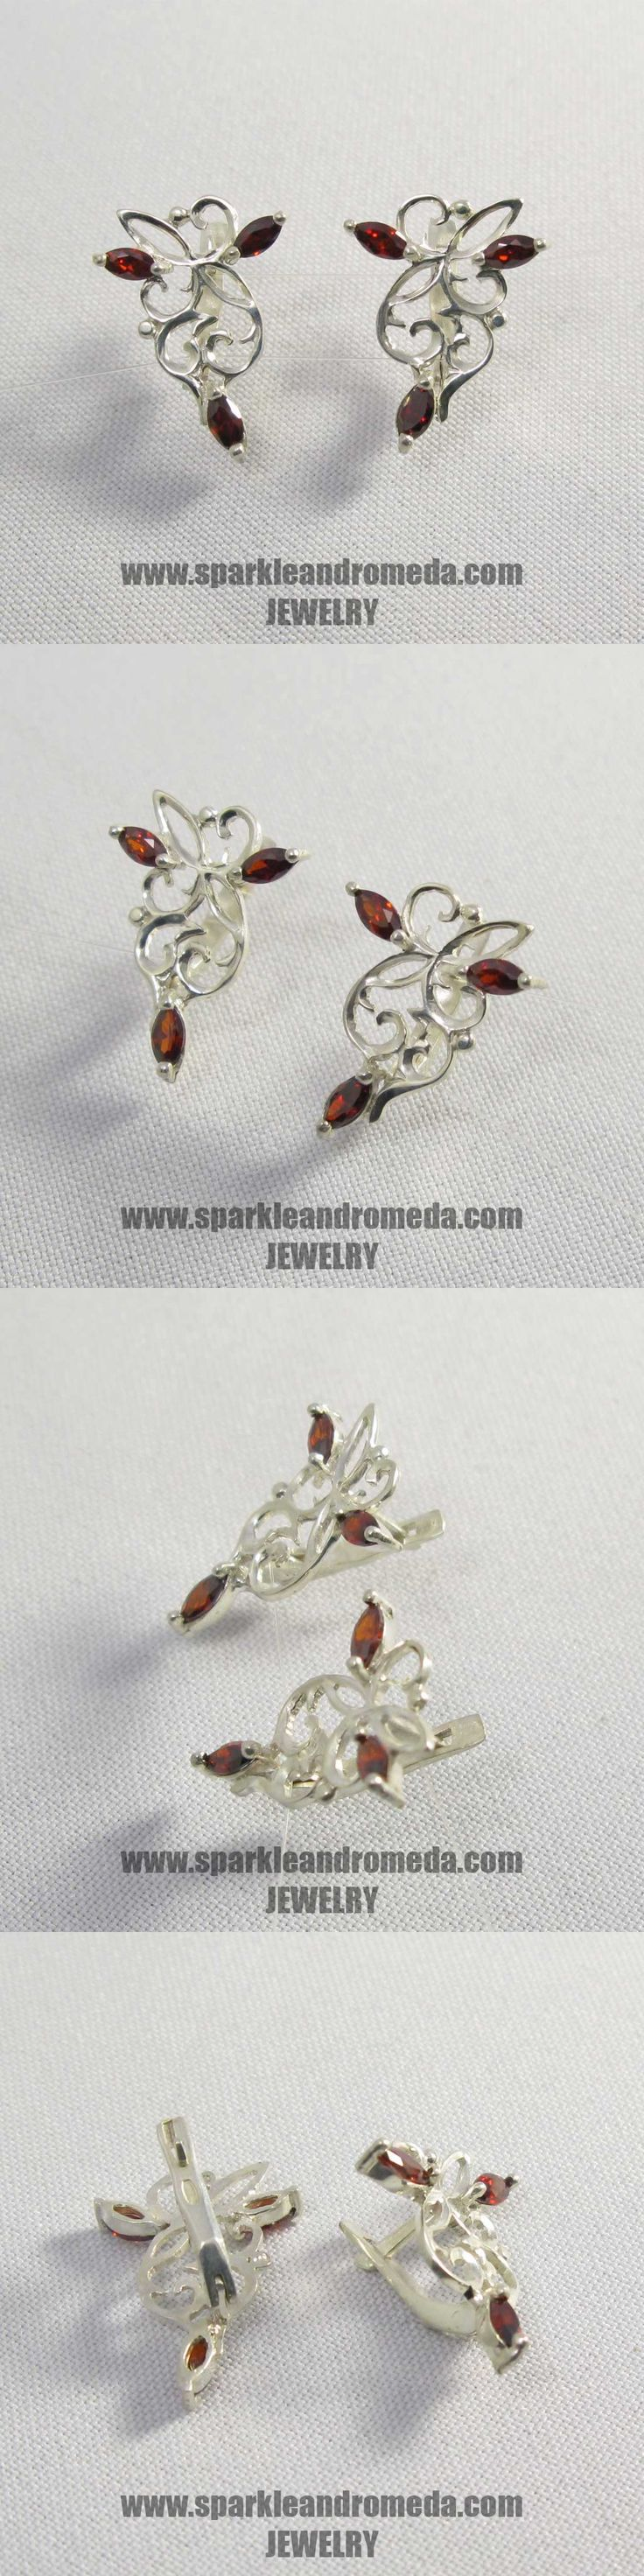 Sterling 925 silver earrings with 6 marquise 5×2,5 mm red almandine color cubic zirconia gemstones.